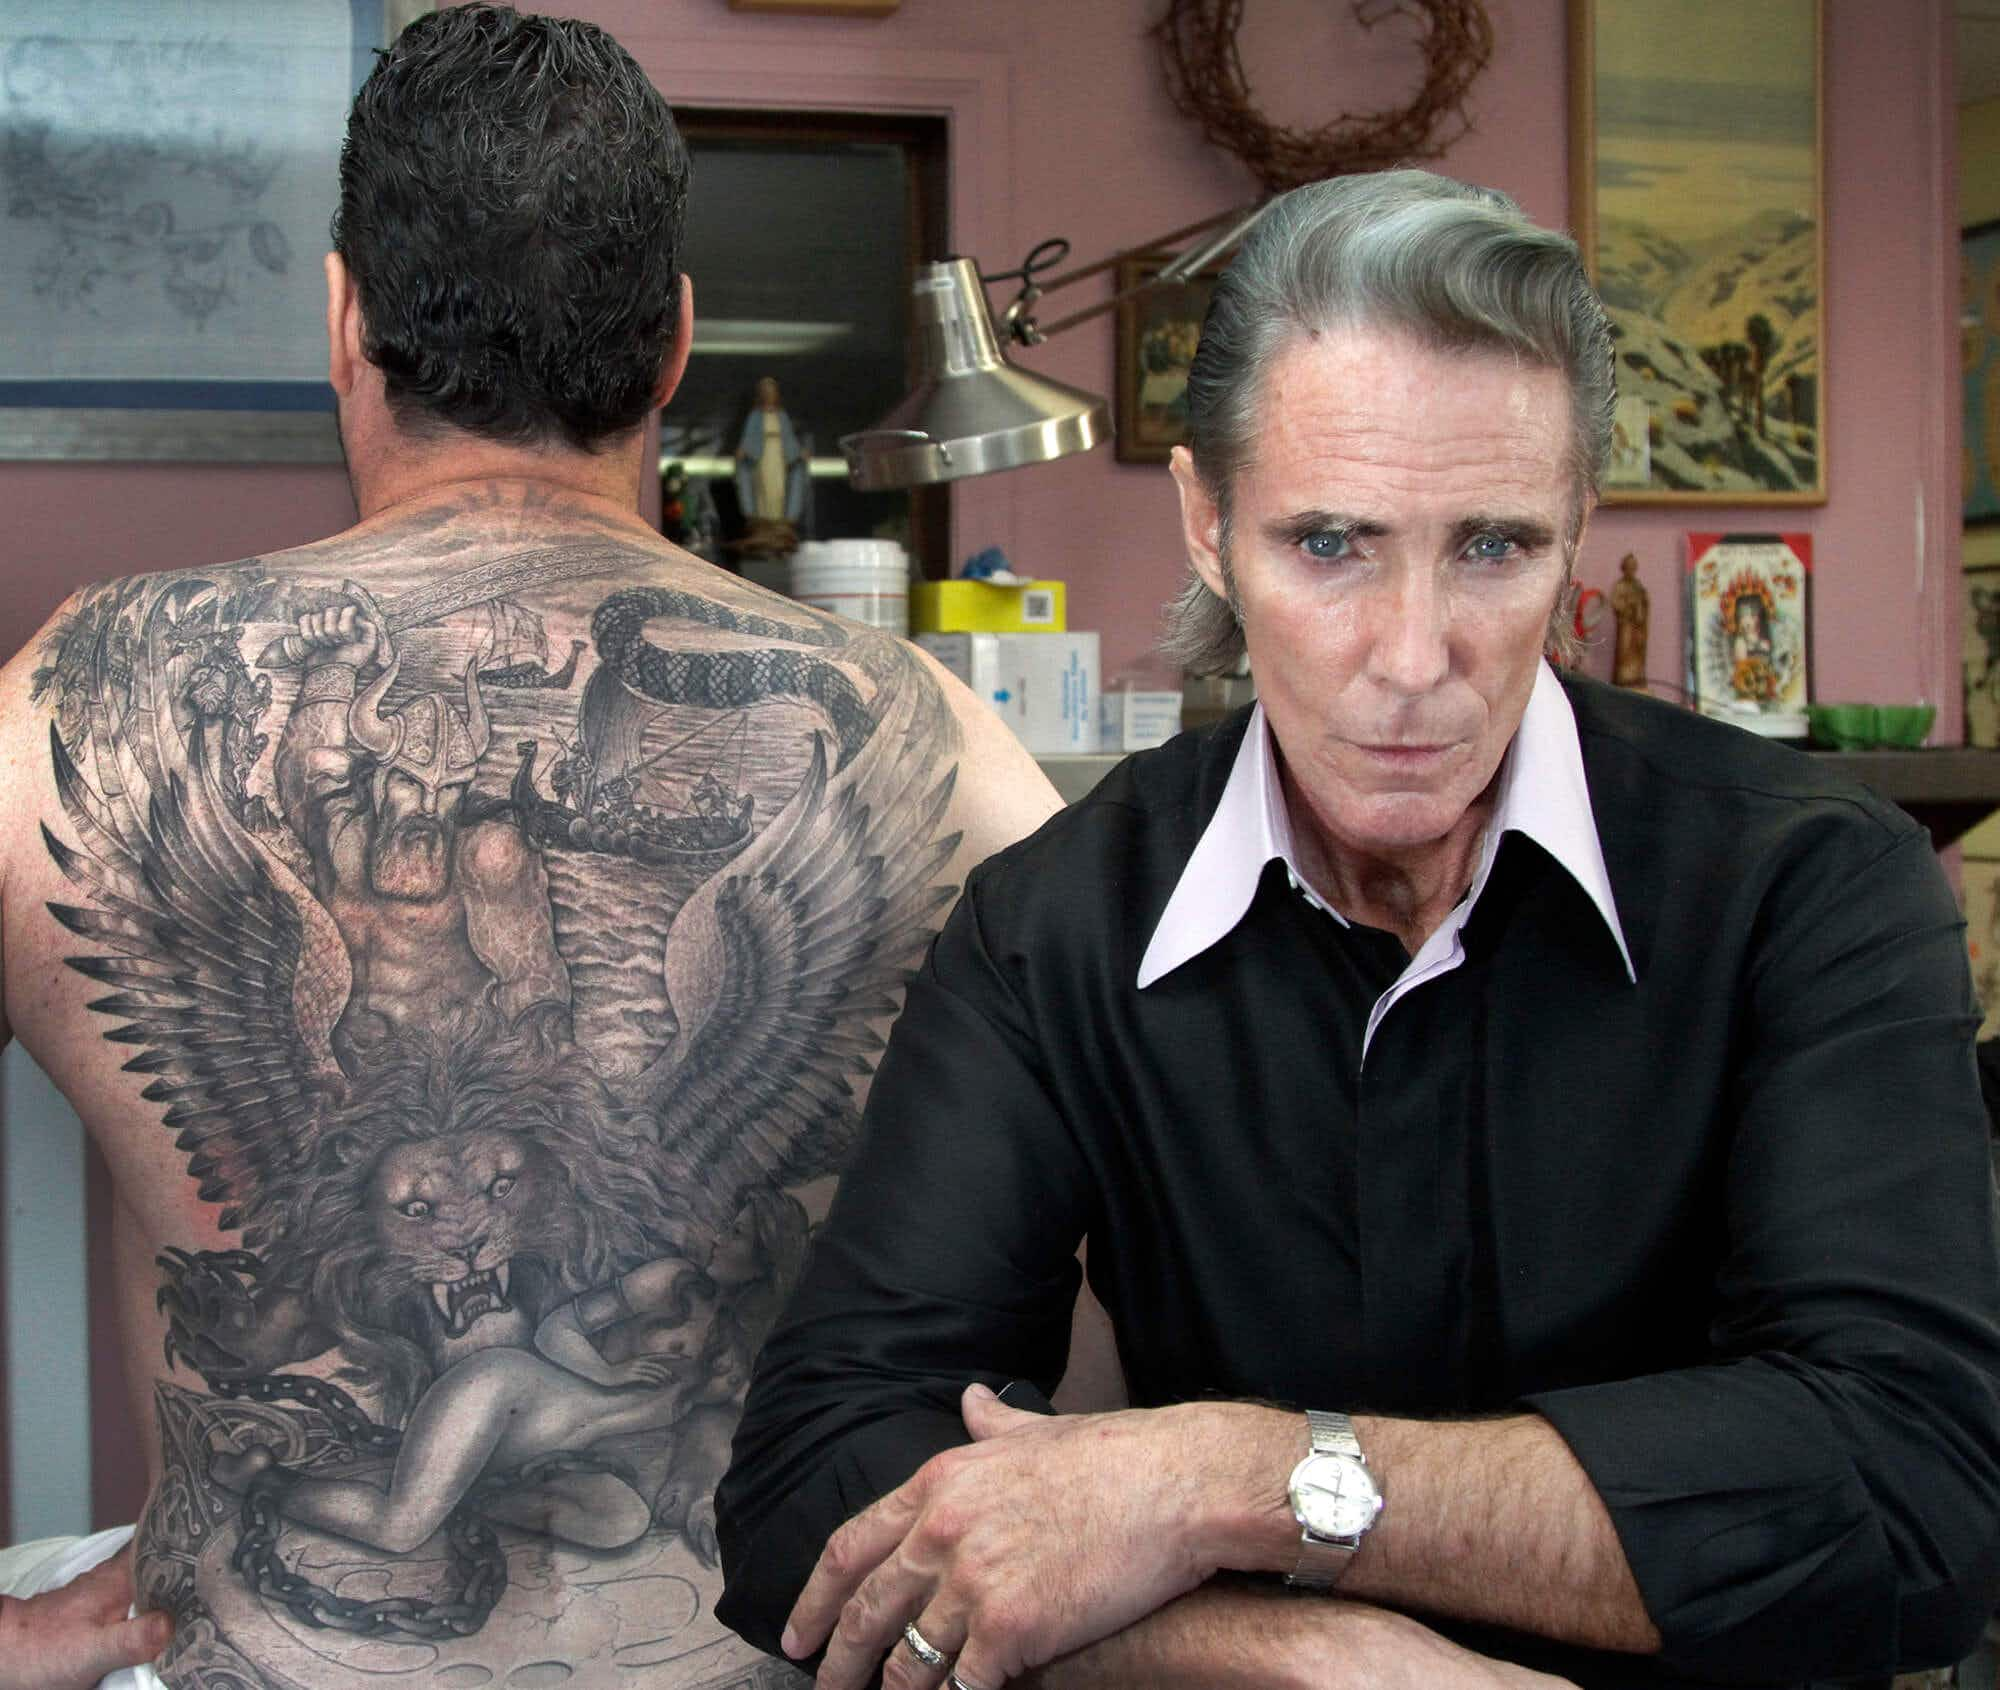 Legendary celebrity tattoo artist Mark Mahoney to take up residency in new boutique London hotel